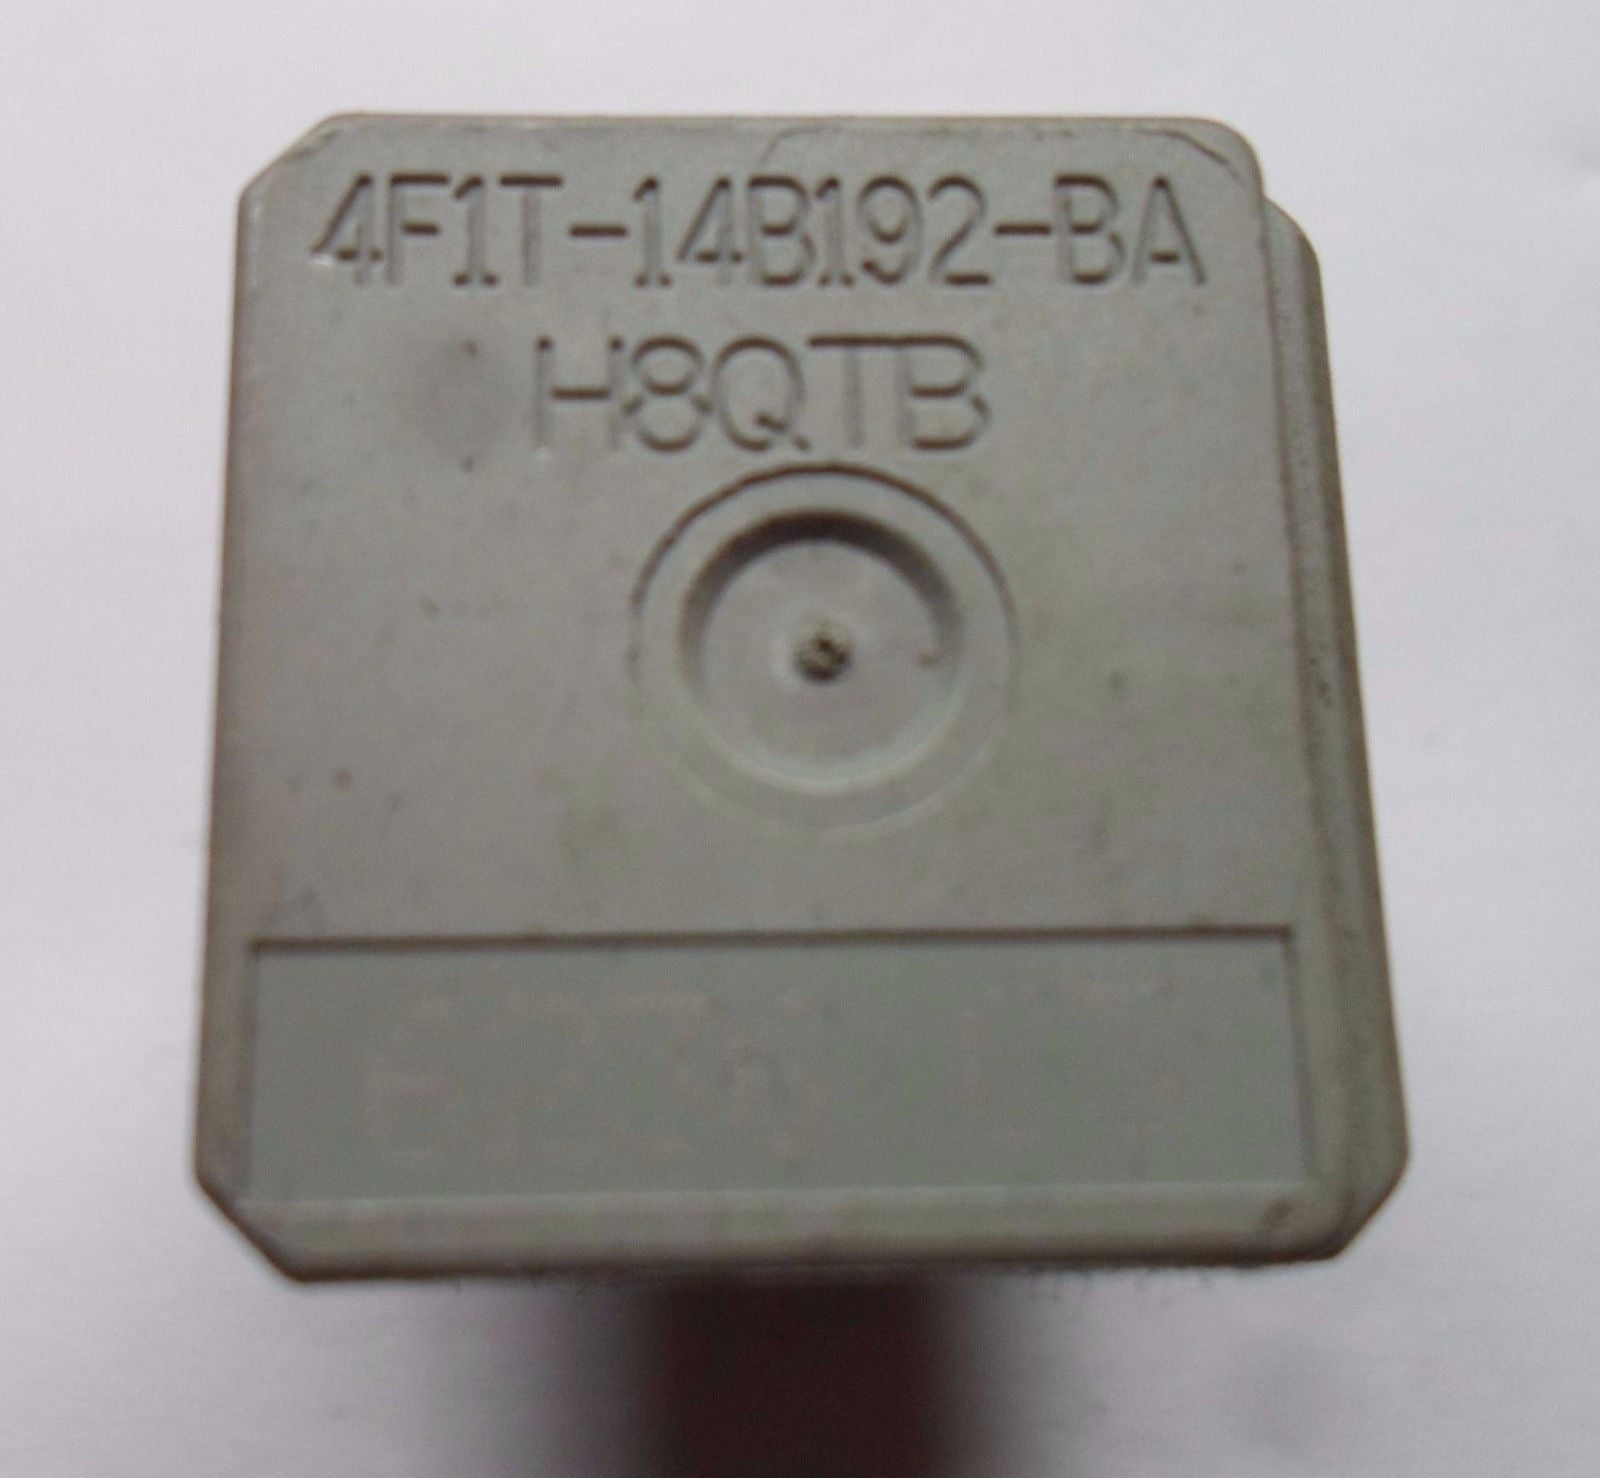 FORD OEM RELAY 4F1T-14B192-BA    H8QTB  TESTED FREE SHIP 60 DAY WARRANTY  F3